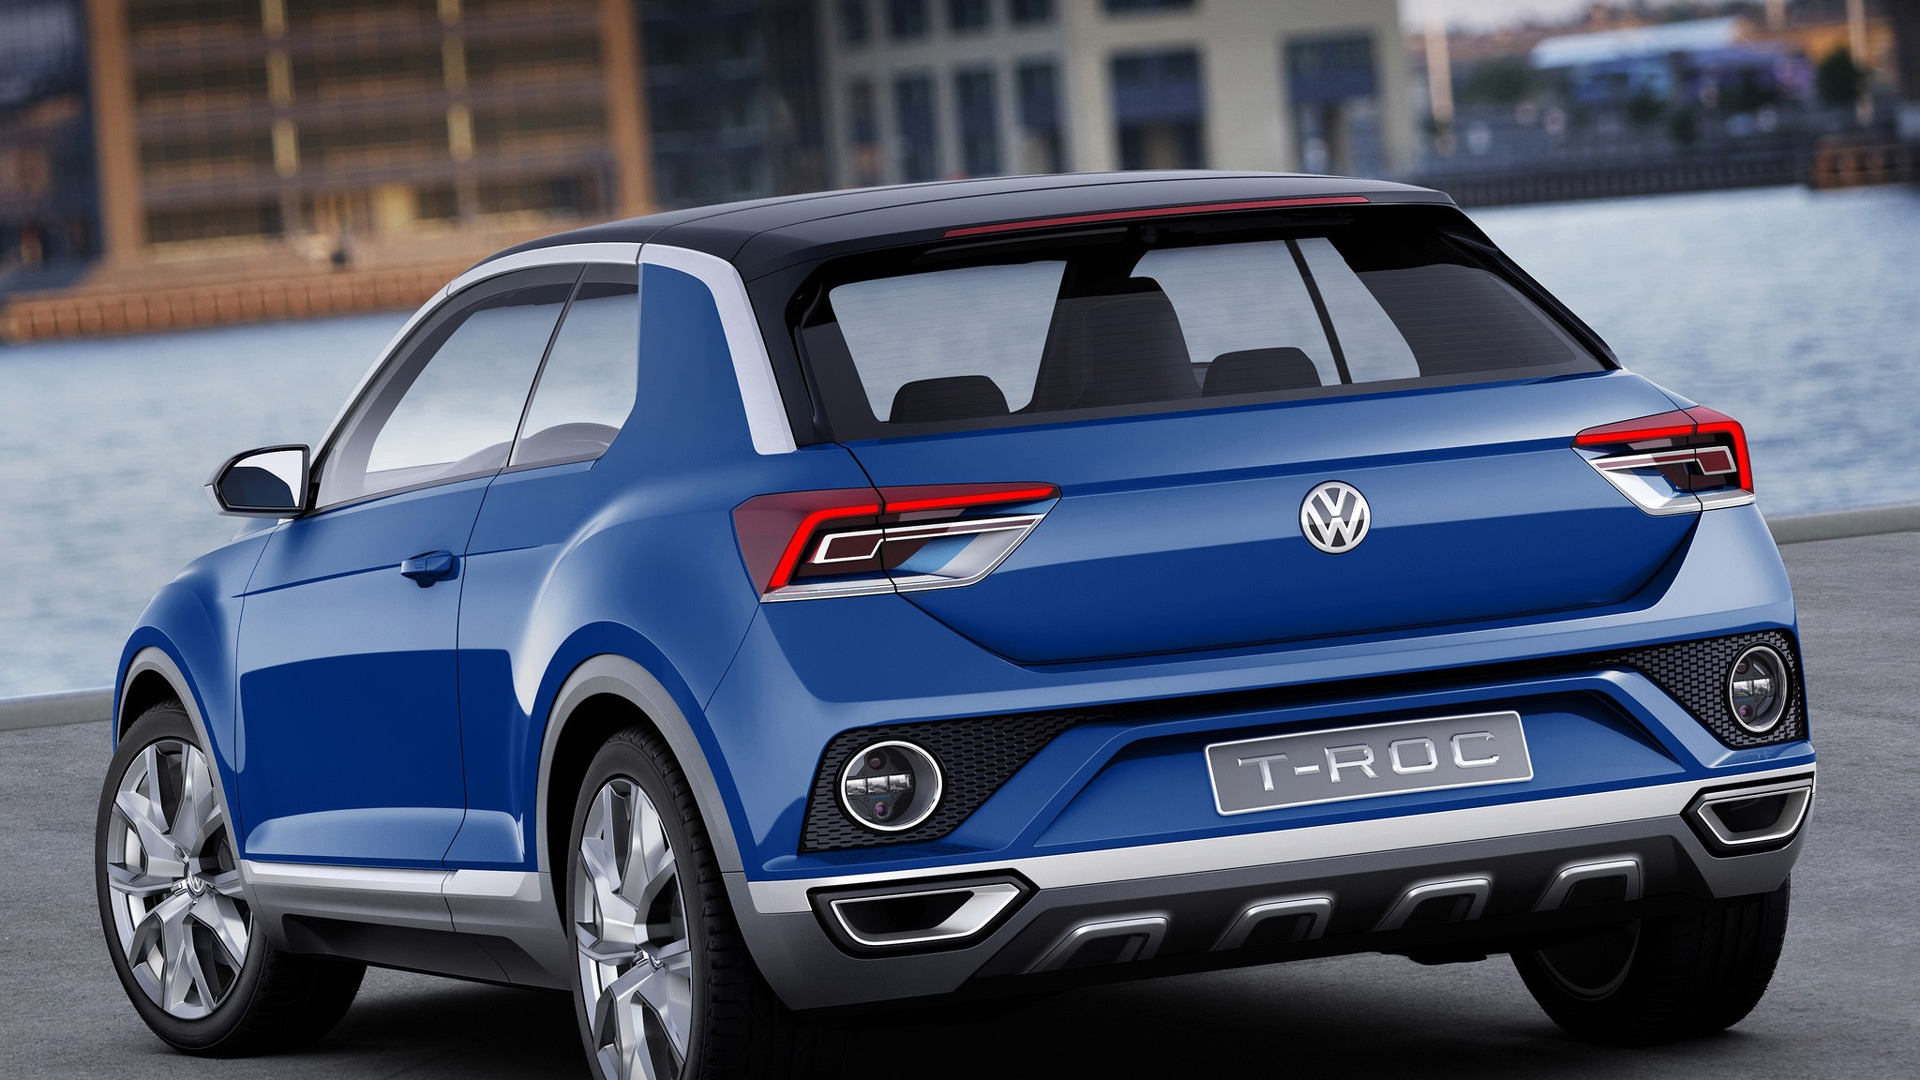 volkswagen t roc o suv made in portugal em 5 pontos essenciais. Black Bedroom Furniture Sets. Home Design Ideas